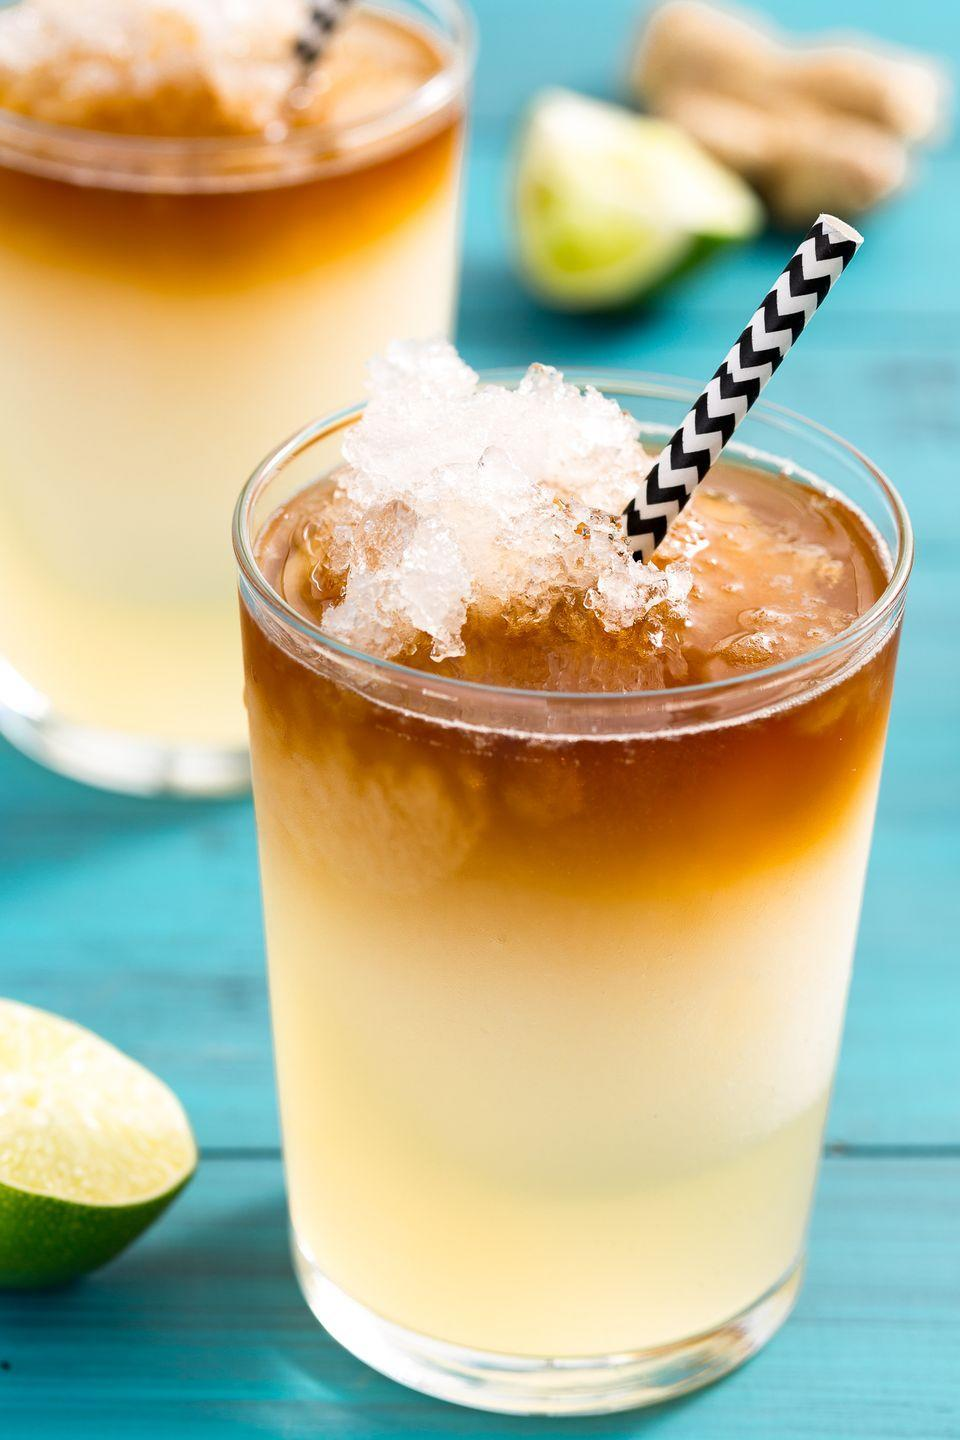 """<p>Spicy ginger beer shines in this grown-up slushie.</p><p>Get the recipe from <a href=""""https://www.delish.com/cooking/recipe-ideas/recipes/a46973/frozen-dark-stormy-drink-recipe/"""" rel=""""nofollow noopener"""" target=""""_blank"""" data-ylk=""""slk:Delish"""" class=""""link rapid-noclick-resp"""">Delish</a>.</p>"""